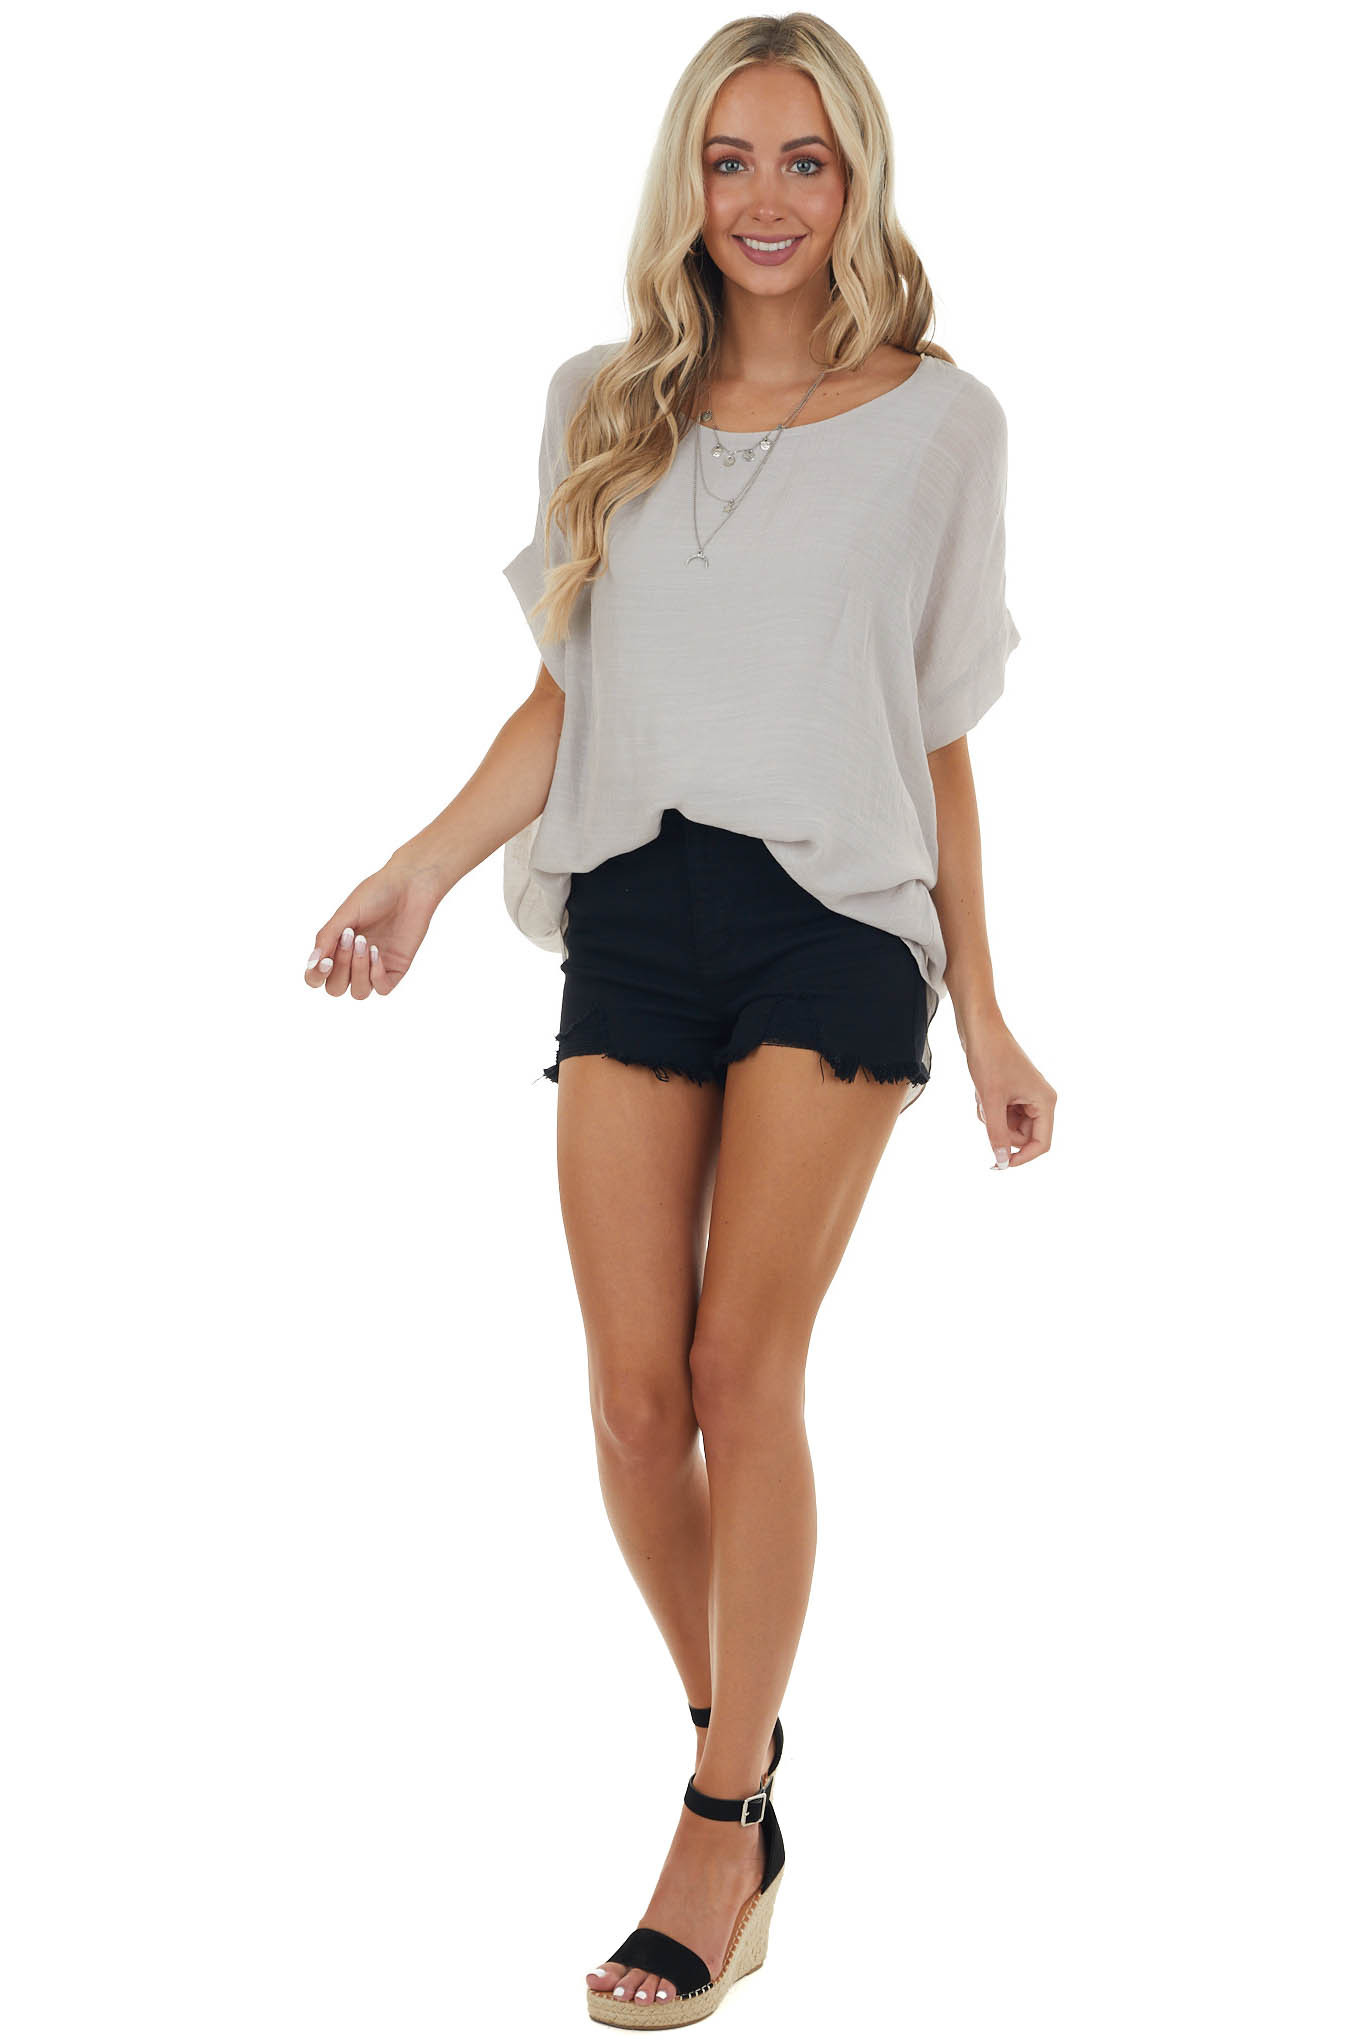 Heather Grey Short Sleeve Top with Cuffed Sleeves